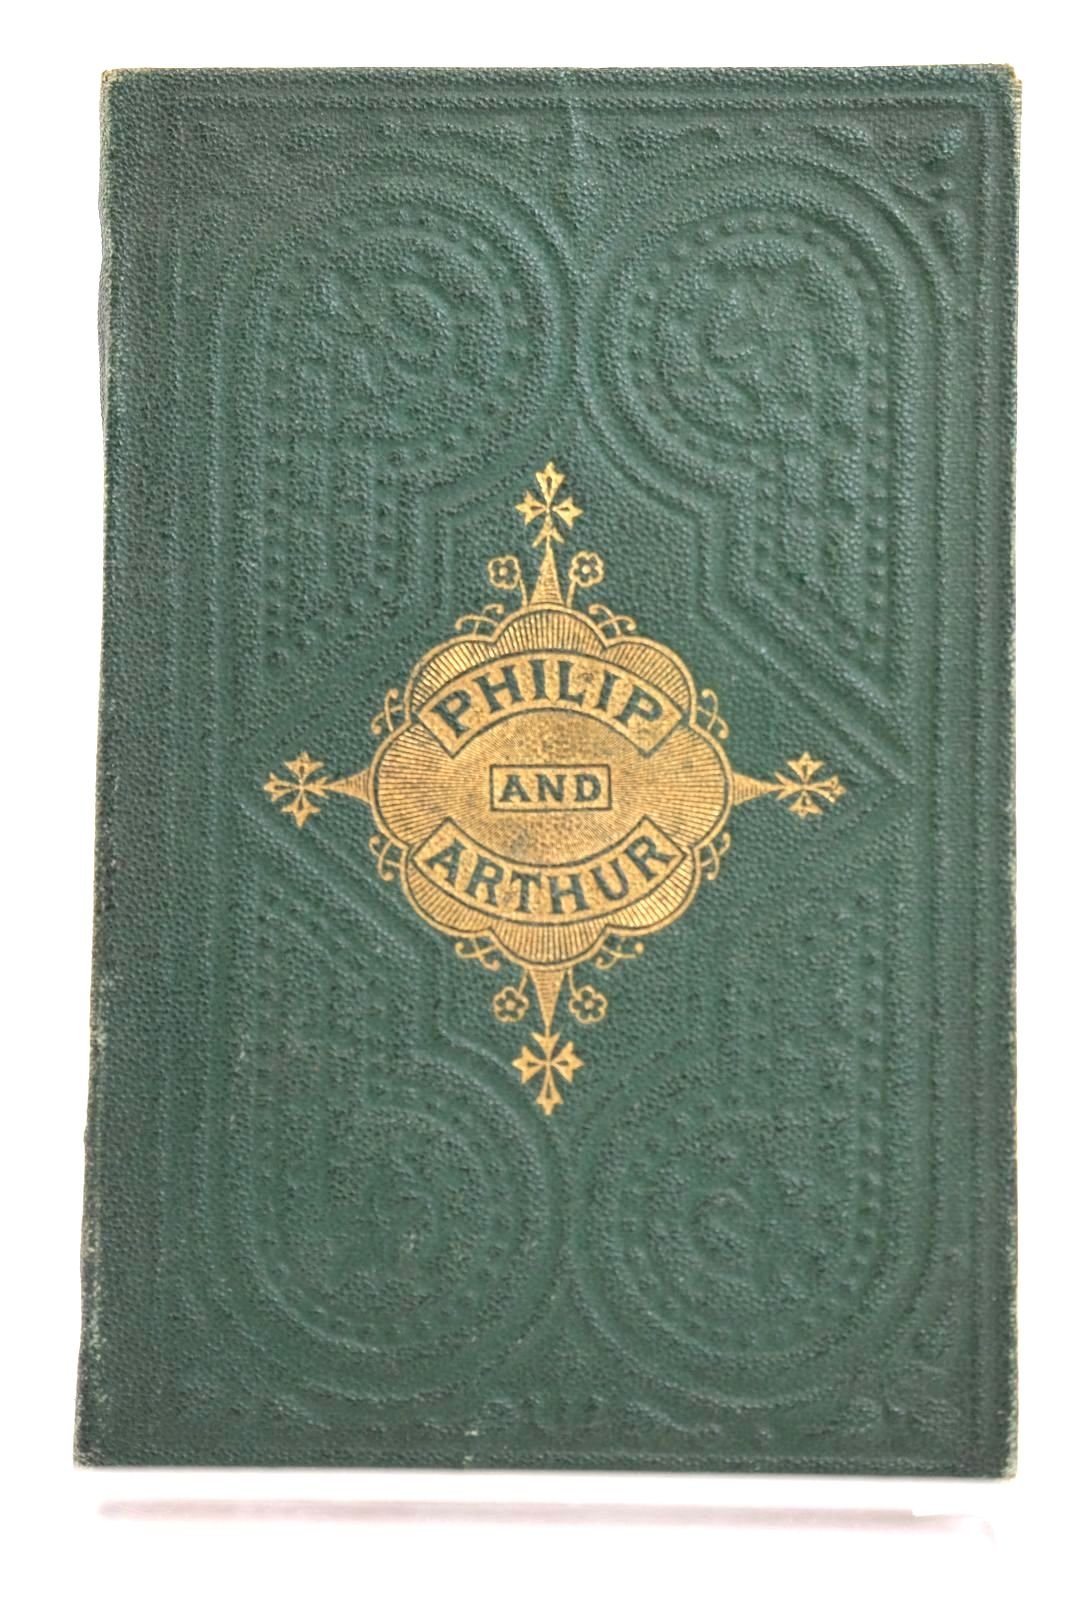 Photo of PHILIP AND ARTHUR, OR THE CHATTERTON CHILDREN published by Frederick Warne & Co. (STOCK CODE: 1318795)  for sale by Stella & Rose's Books